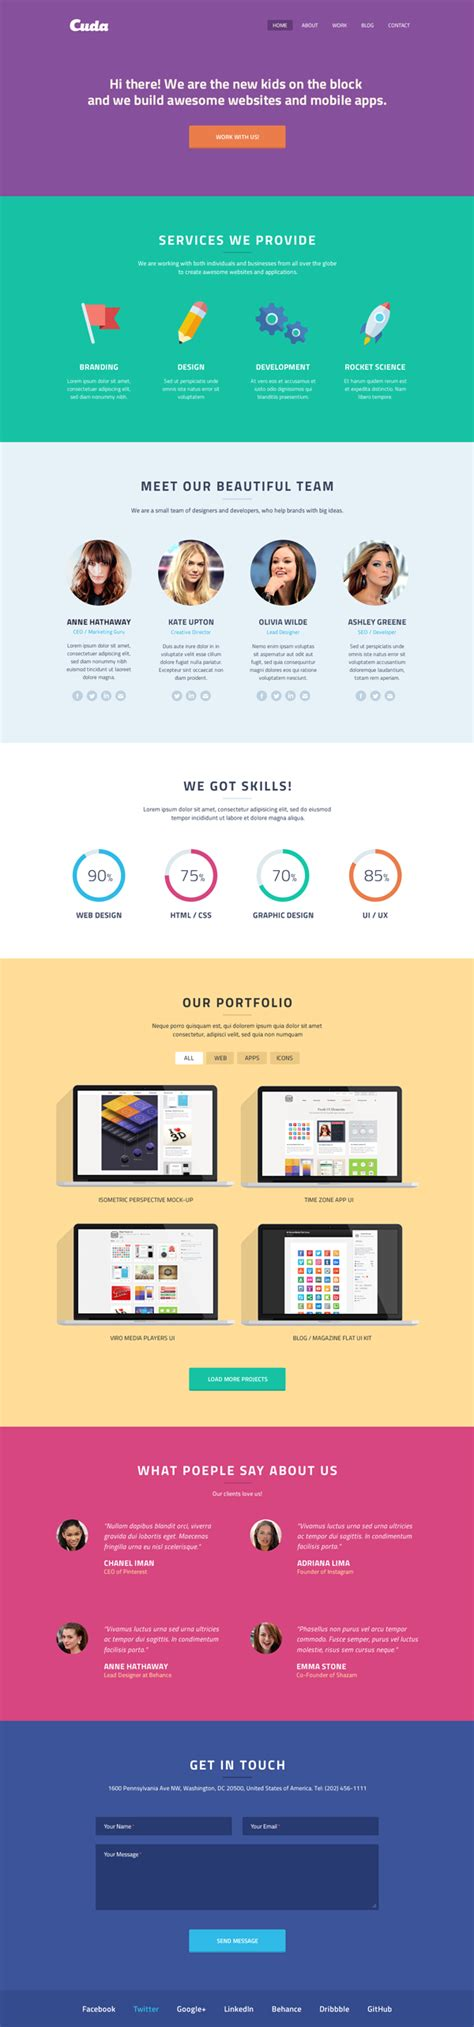 25 Trendy New Landing Page Single Page Website App Psd Templates For Free Download 365 Web Single Page Website Template